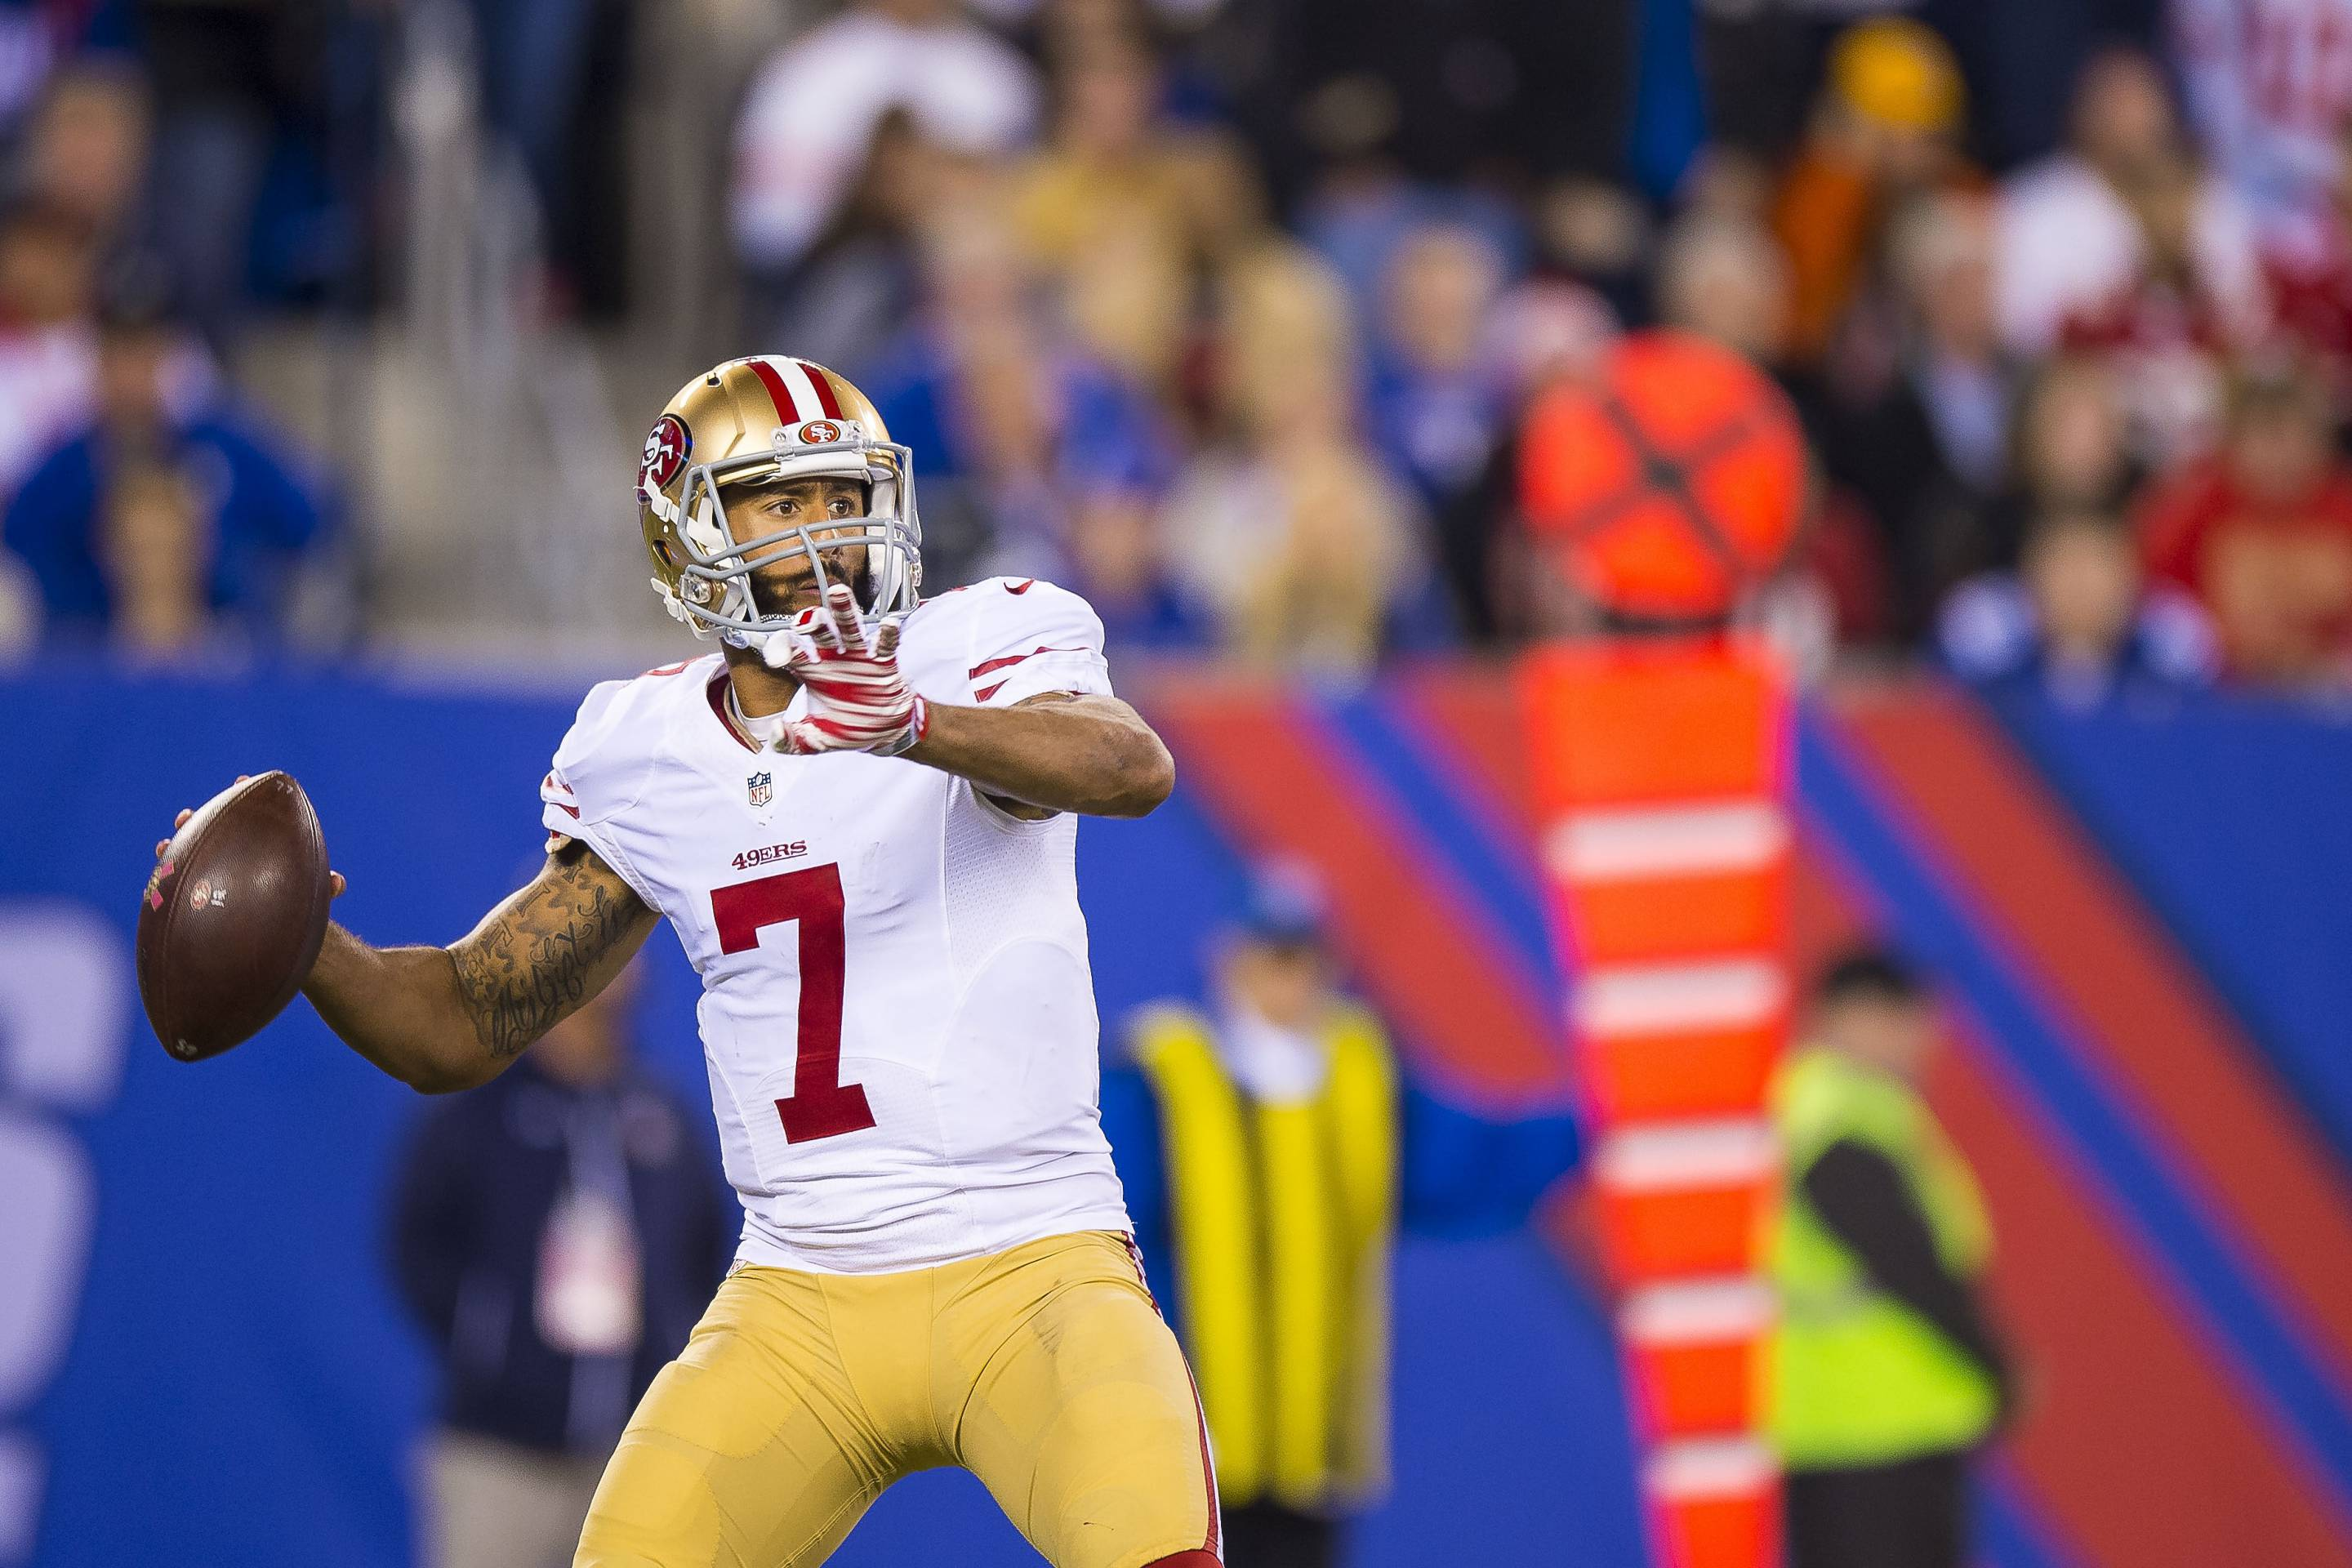 NFL: OCT 11 49ers at Giants